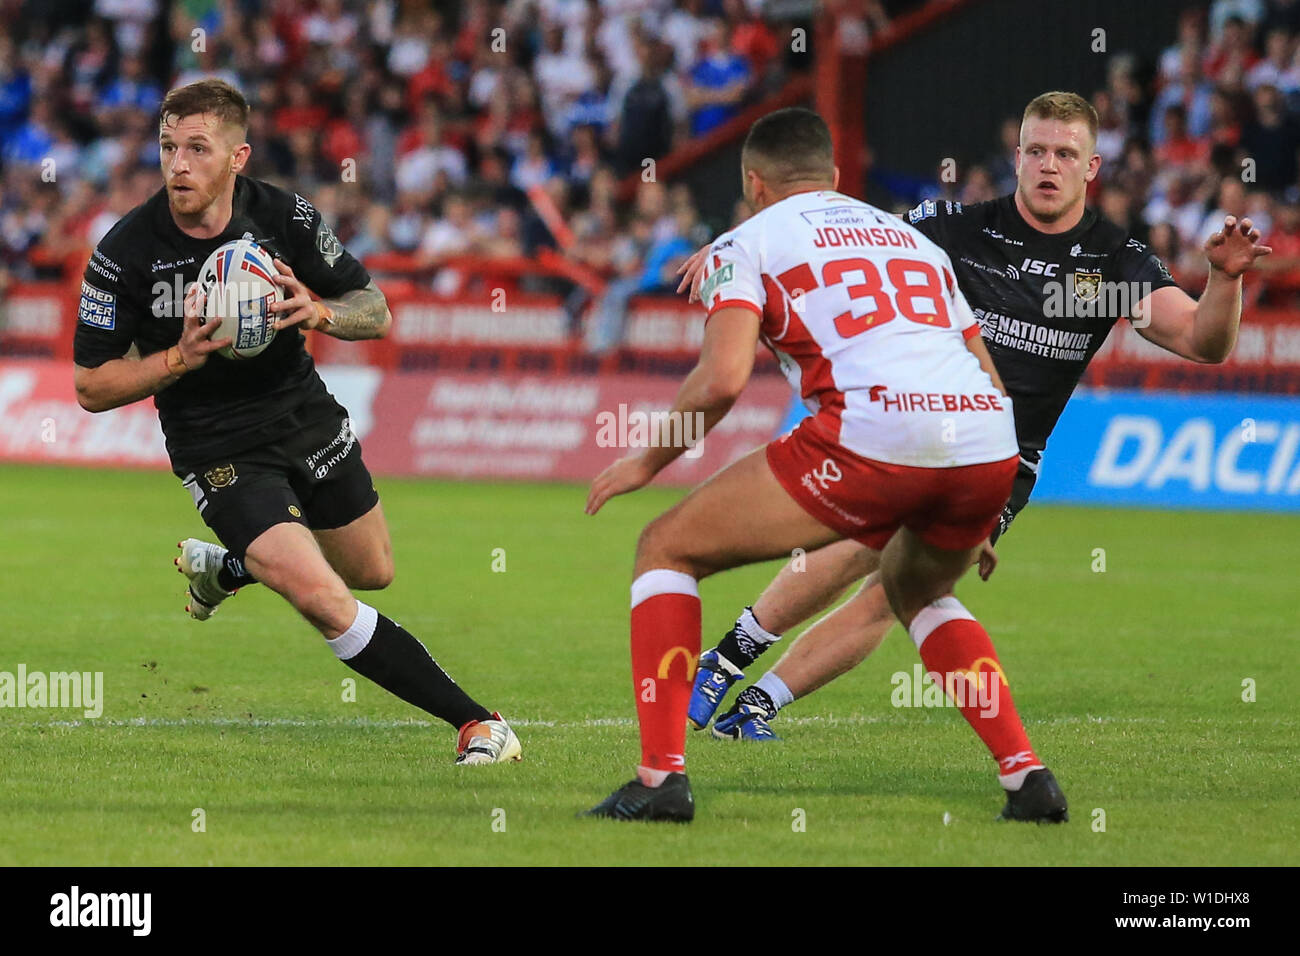 27.Juni 2019, kcom Craven Park, Hull, England; Betfred Super League, Runde 20, Rumpf Kr vs Rumpf FC; Marc Sneyd (7) von Hull FC läuft mit dem Ball Credit: David Grieben/News Bilder Stockfoto